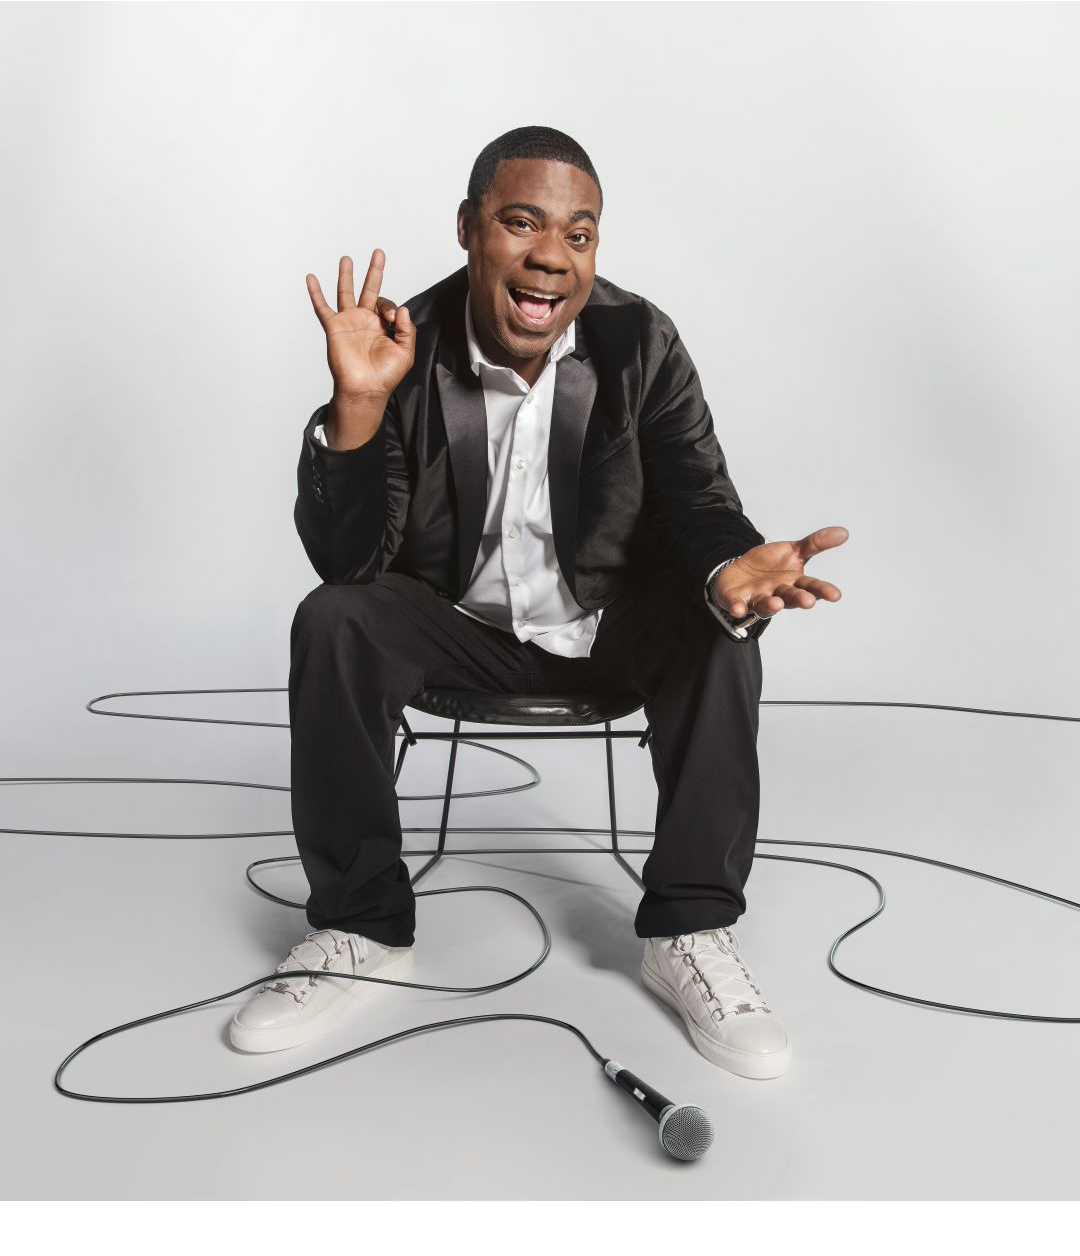 "Tracy morgan - Tracy Morgan is one of the most respected comedians in his field. Starring for seven seasons on NBC's Emmy and Golden Globe Award-winning 30 Rock, Morgan appeared opposite Tina Fey and Alec Baldwin as ""Tracy Jordan,"" the unpredictable star of Lemon's (Fey) hit variety show, TGS with Tracy Jordan. He can currently be seen in the second season of the TBS show ""The Last OG"" which he stars in and executive produces. Most recently, he starred in in Paramount's What Men Want with Taraji P. Henson which released in January 2019. Morgan's stand up special Staying Alive was released globally on Netflix in May 2017. Additionally, Morgan received a star on the Hollywood Walk of Fame in the 2016 class.From his work on 30 Rock, Morgan has received an Emmy Nomination in the Supporting Actor category and been nominated multiple years for the Supporting Actor NAACP Image Award. The 30 Rock cast has also won the Screen Actors Guild Award for ""Outstanding Performance by an Ensemble in a Comedy Series."" The beloved series came to an end in January 2013. Outside of the show, Morgan also received an Emmy nomination for Outstanding Guest Actor in a comedy series in 2016 for hosting an episode of SNL.In April 2014, Morgan released a standup special for Comedy Central, titled Tracy Morgan: Bona Fide, which brought Comedy Central one of its largest viewership for a standup special that year. Previously, his first stand up special was titled Black & Blue and released on HBO in 2010. Another milestone for Morgan was reached in 2009 with the release of his first book, a compilation of studied anecdotes and some of the more serious moments that shaped him and his career entitled I Am The New Black.Morgan has also had the opportunity to be a part of some of the most successful animated films in recent years. In 2009, he made his animation debut lending his voice for Jerry Bruckheimer's G-Force, a combination live-action/CG film. The film opened number one in US box offices and was celebrated by audiences worldwide. In 2013, he starred as the bulldog, Luiz, in the film Rio and again in April 2014 when he reprised his role in Rio 2. Morgan's voice can also be heard in the Oscar-nominated film, Boxtrolls, as one of the film's antagonist, Mr. Gristle.Morgan has headlined across the country and abroad on various tours and festivals for his stand-up comedy. He was first introduced to television audiences in his role as Hustleman on the hit comedy series Martin. He went on to join Saturday Night Live in 1996 where he appeared for seven seasons and created such memorable characters as ""Astronaut Jones"" and ""Brian Fellows."" After leaving SNL, Morgan went on to star in his own comedy series The Tracy Morgan Show and voiced ""Spoonie Luv"" on Comedy Central's Crank Yankers. Additional film credits include: Cop Out, the remake of the British film Death at a Funeral, First Sunday opposite Ice Cube and Katt Williams, The Longest Yard opposite Adam Sandler, Jay and Silent Bob Strike Back, Head of State, Son of No One, Why Stop Now and Fist Fight.Morgan currently resides in New Jersey with his wife their daughter."